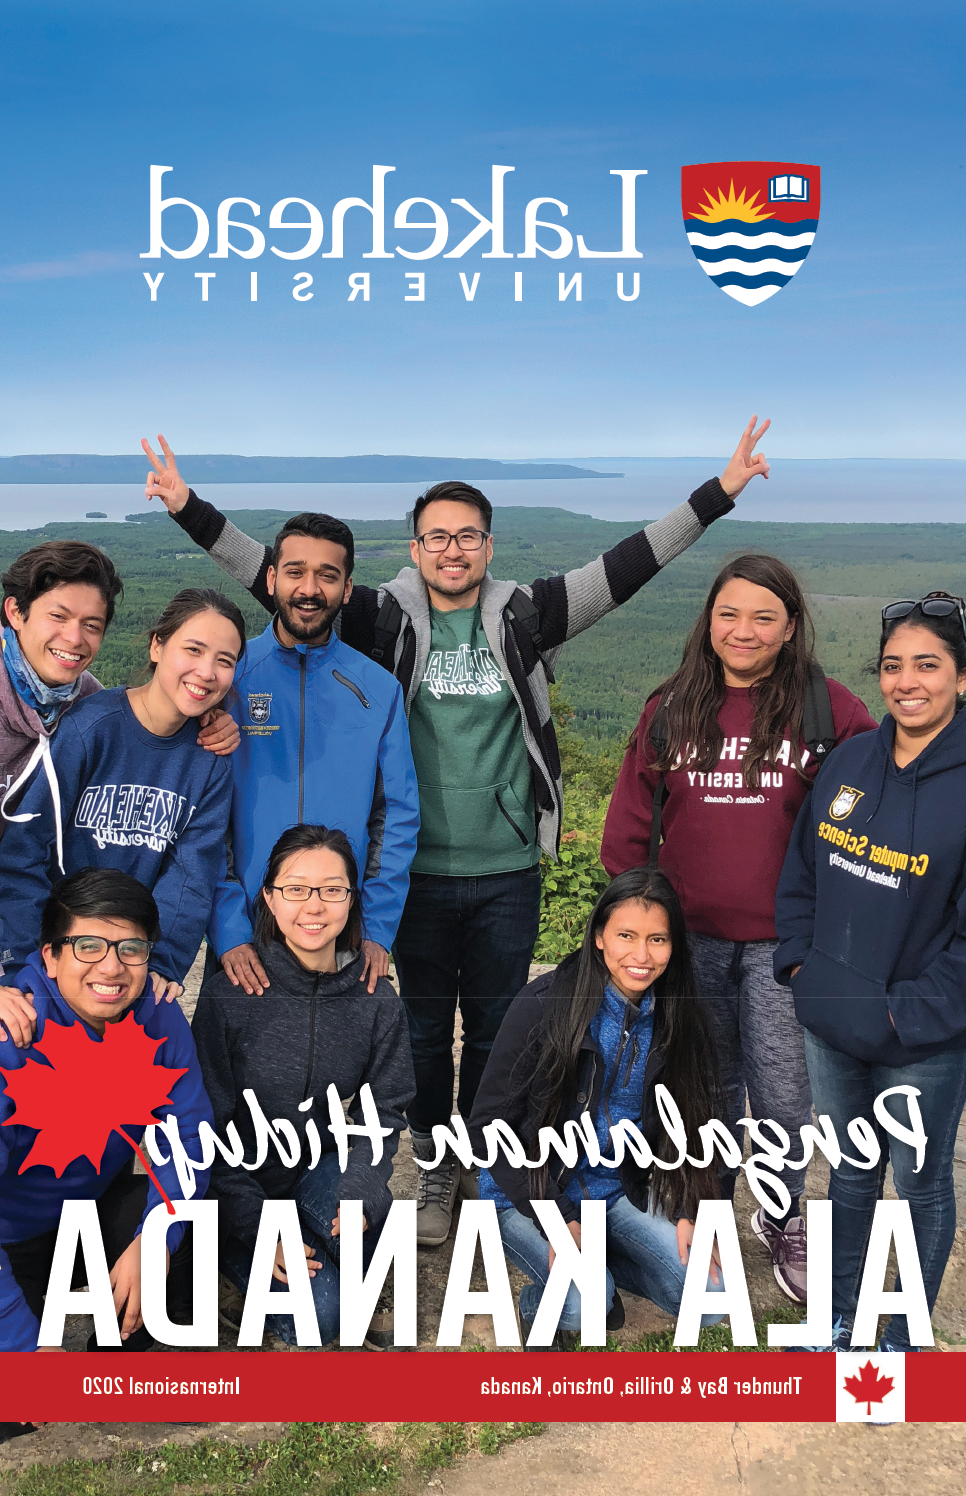 The cover of the 2019 Lakehead 国际 Brochure in Indonesian.